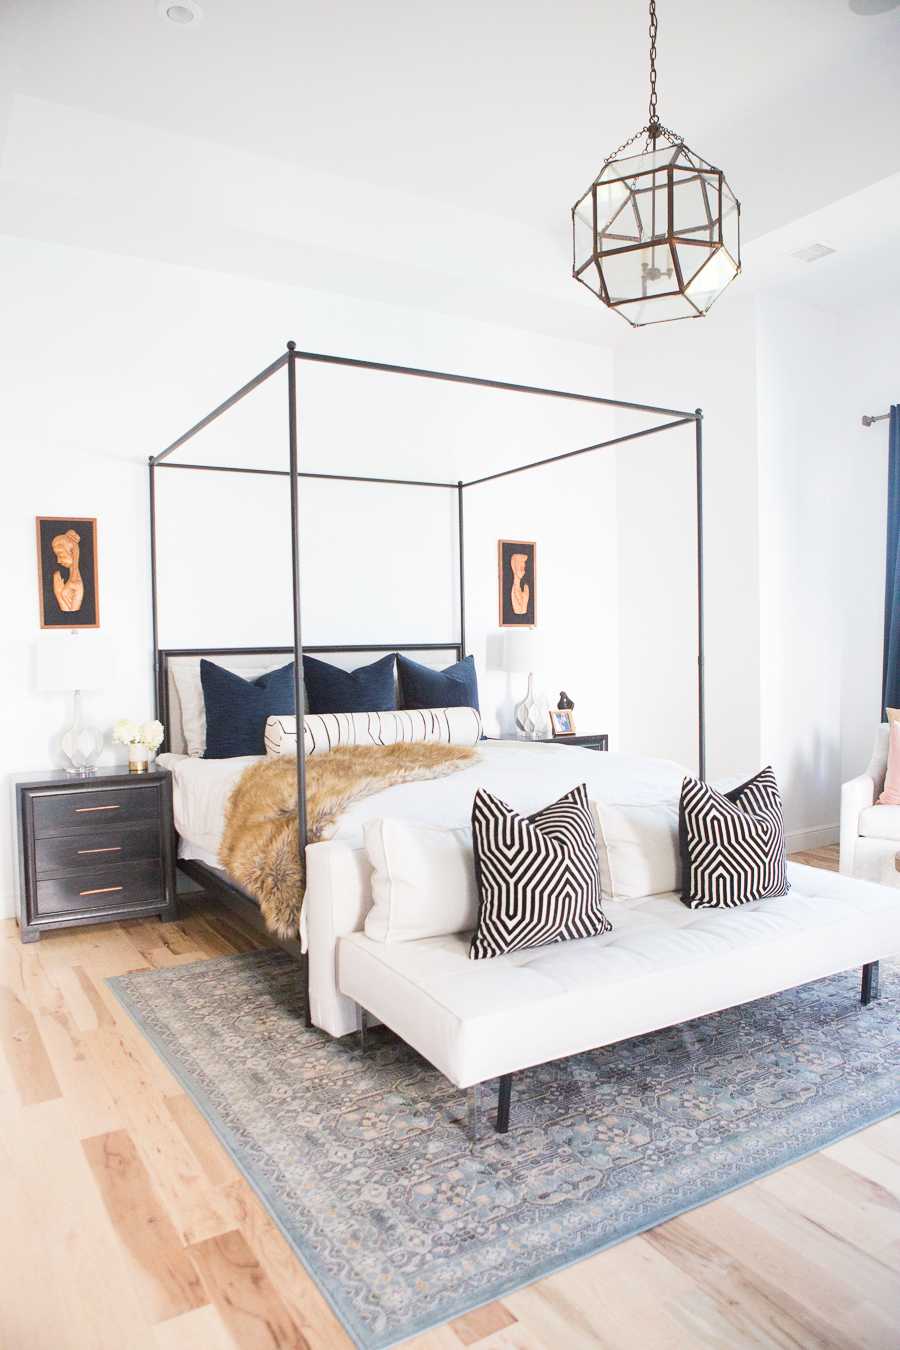 Modern preppy bedroom inspiration, navy black and white bedroom, canopy bed